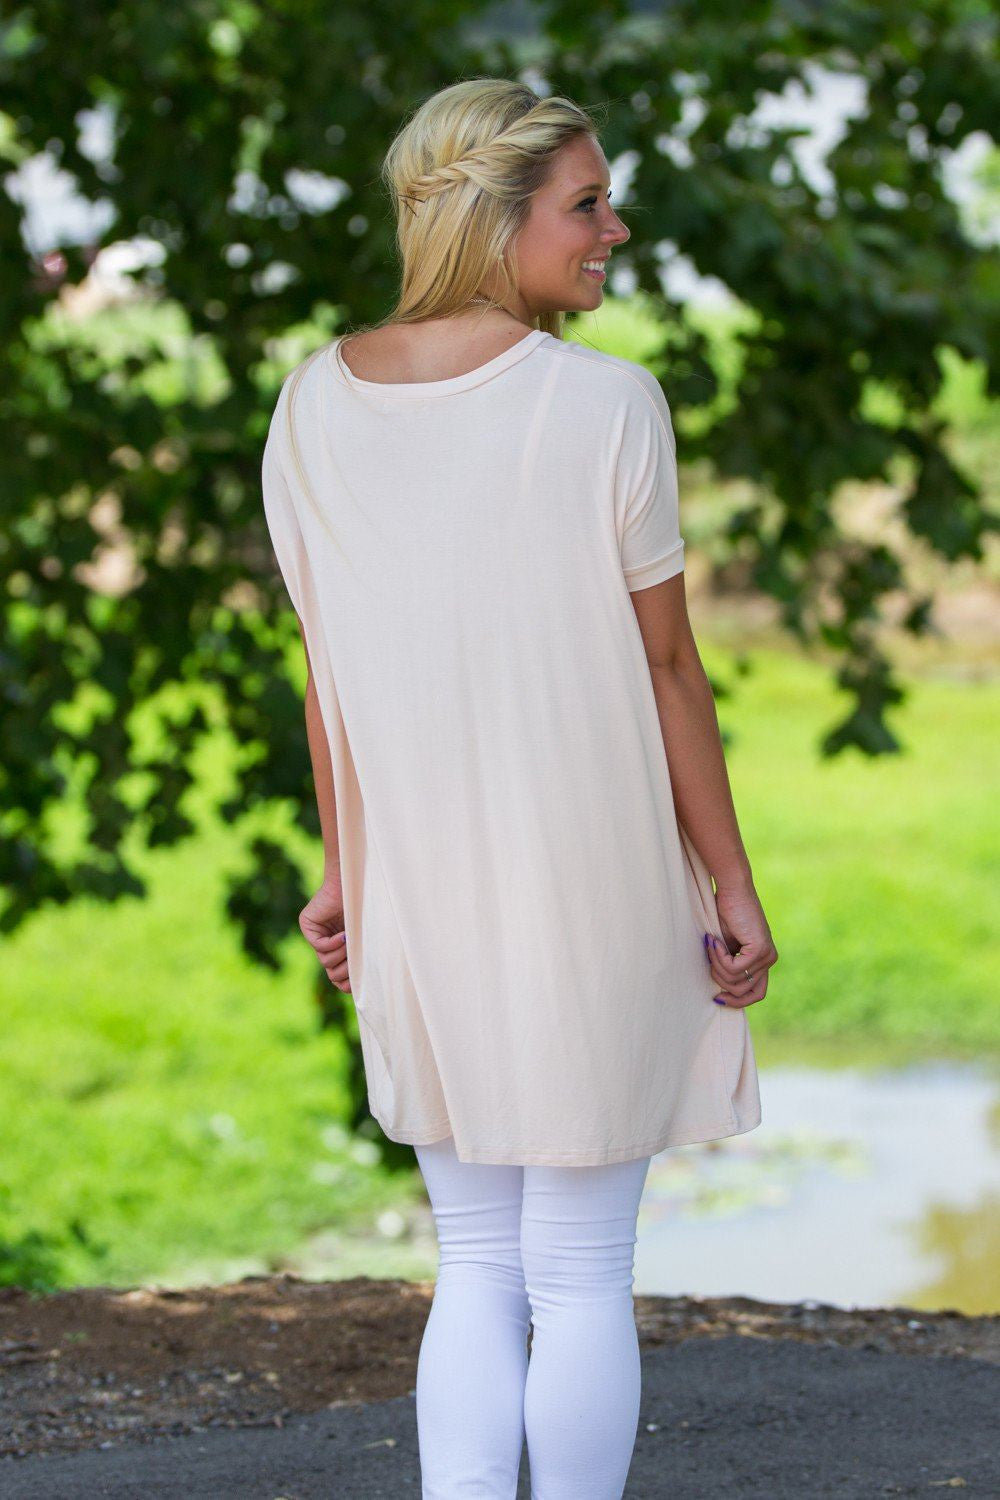 Short Sleeve V-Neck Piko Tunic - Cream - Piko Clothing - 2